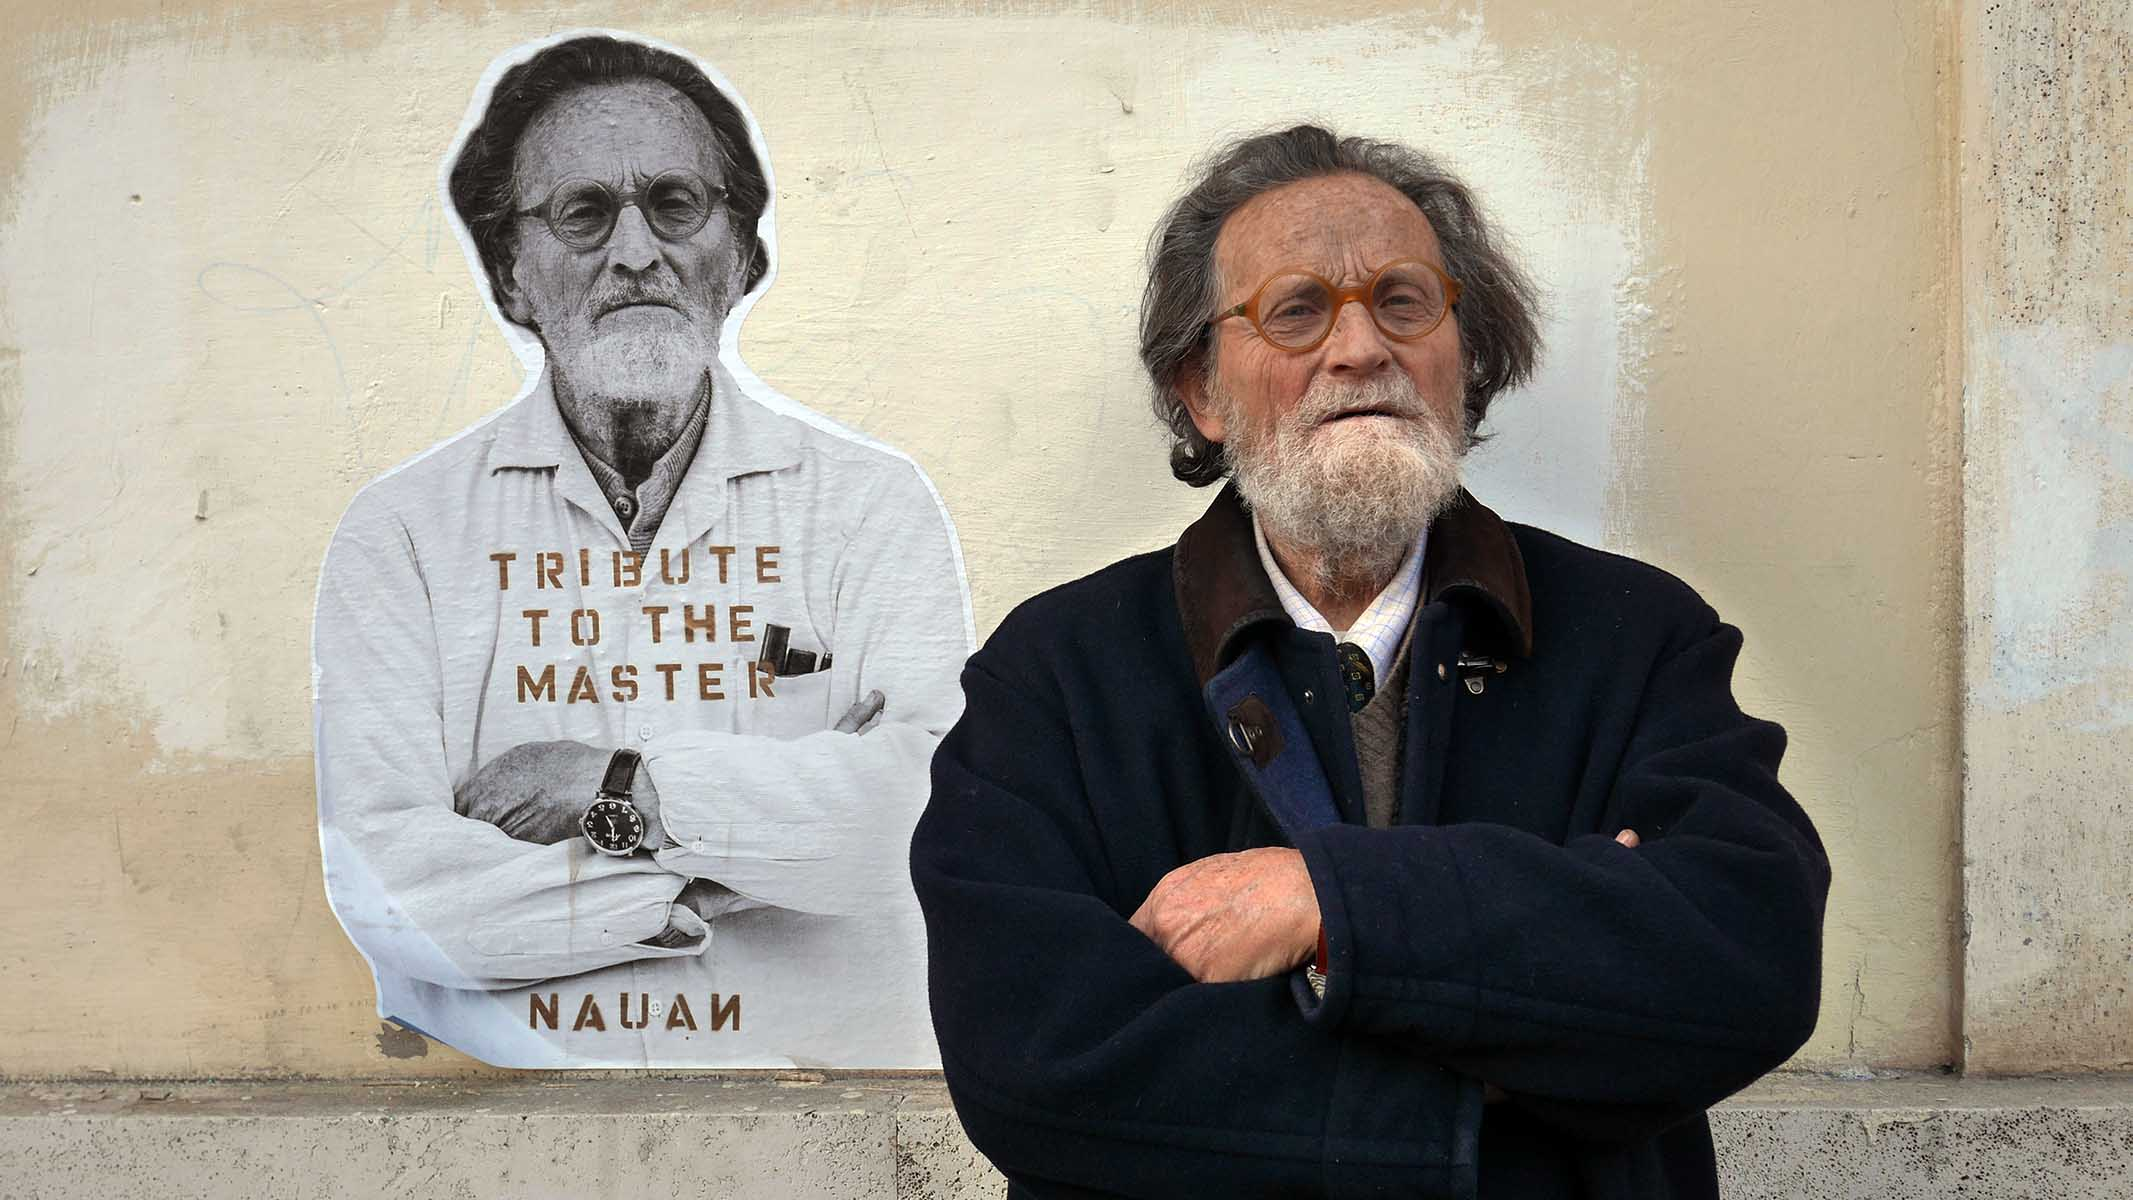 Tribute to the Master Fausto Delle Chiaie<br />by Nauan, and photo by Ribes Sappa<br /><br /><br />&nbsp;